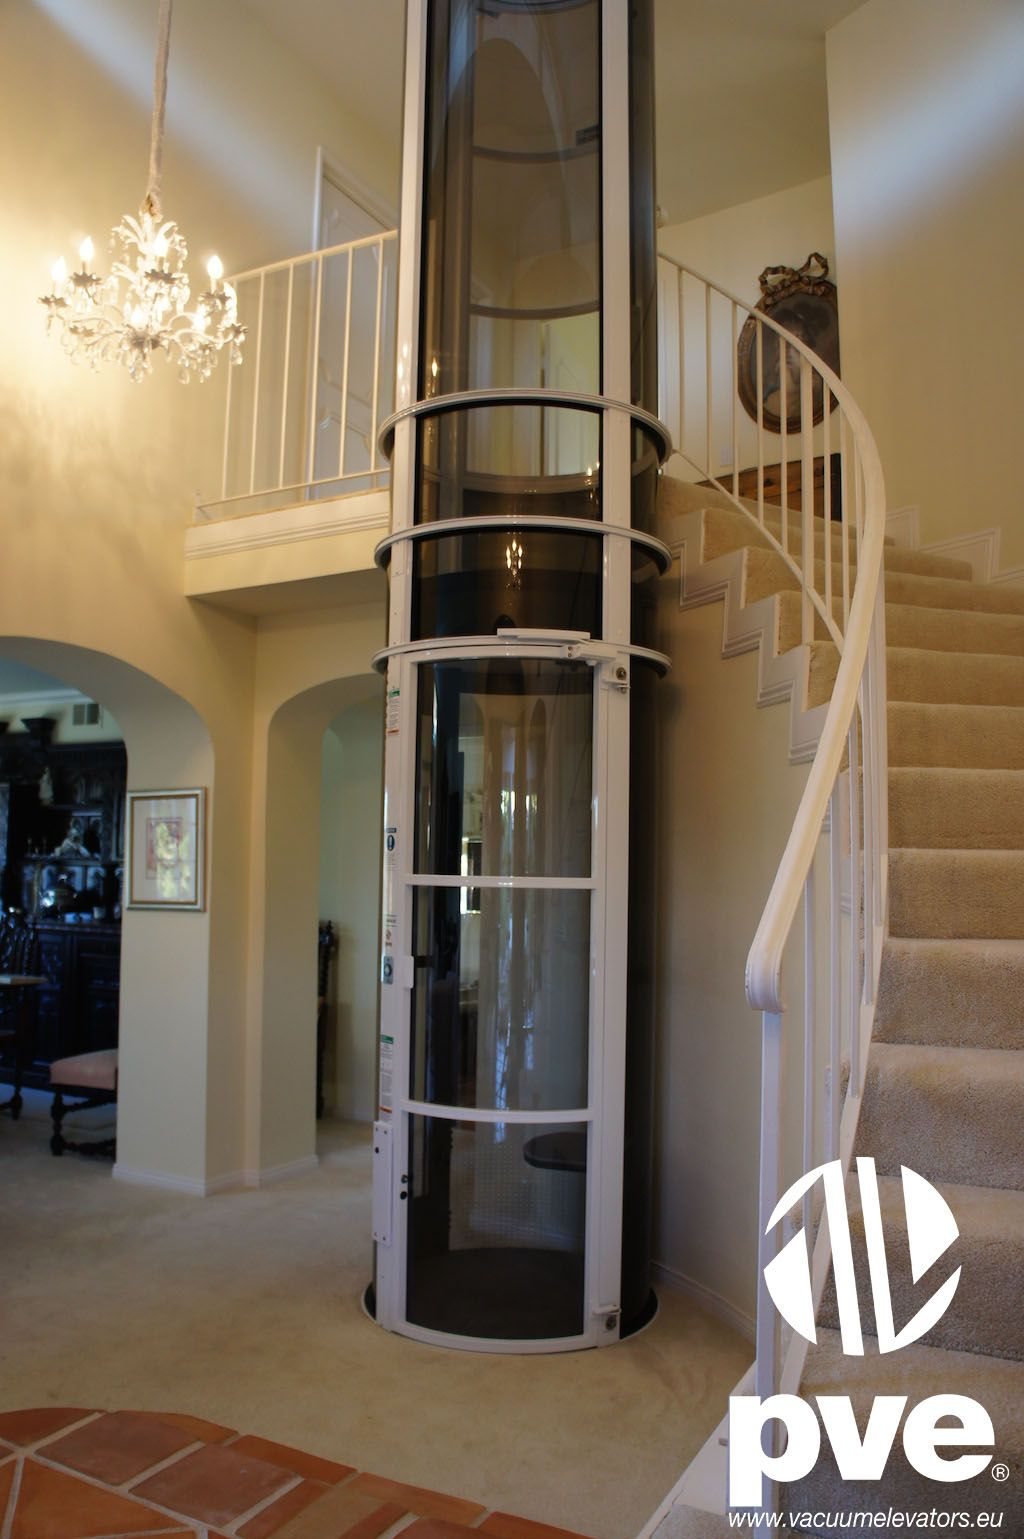 Would Really Love One Of These In My House Vacuum Lift Elevator Home Domestic White Design Dream Stair Tiny House Stairs House Elevation House Stairs